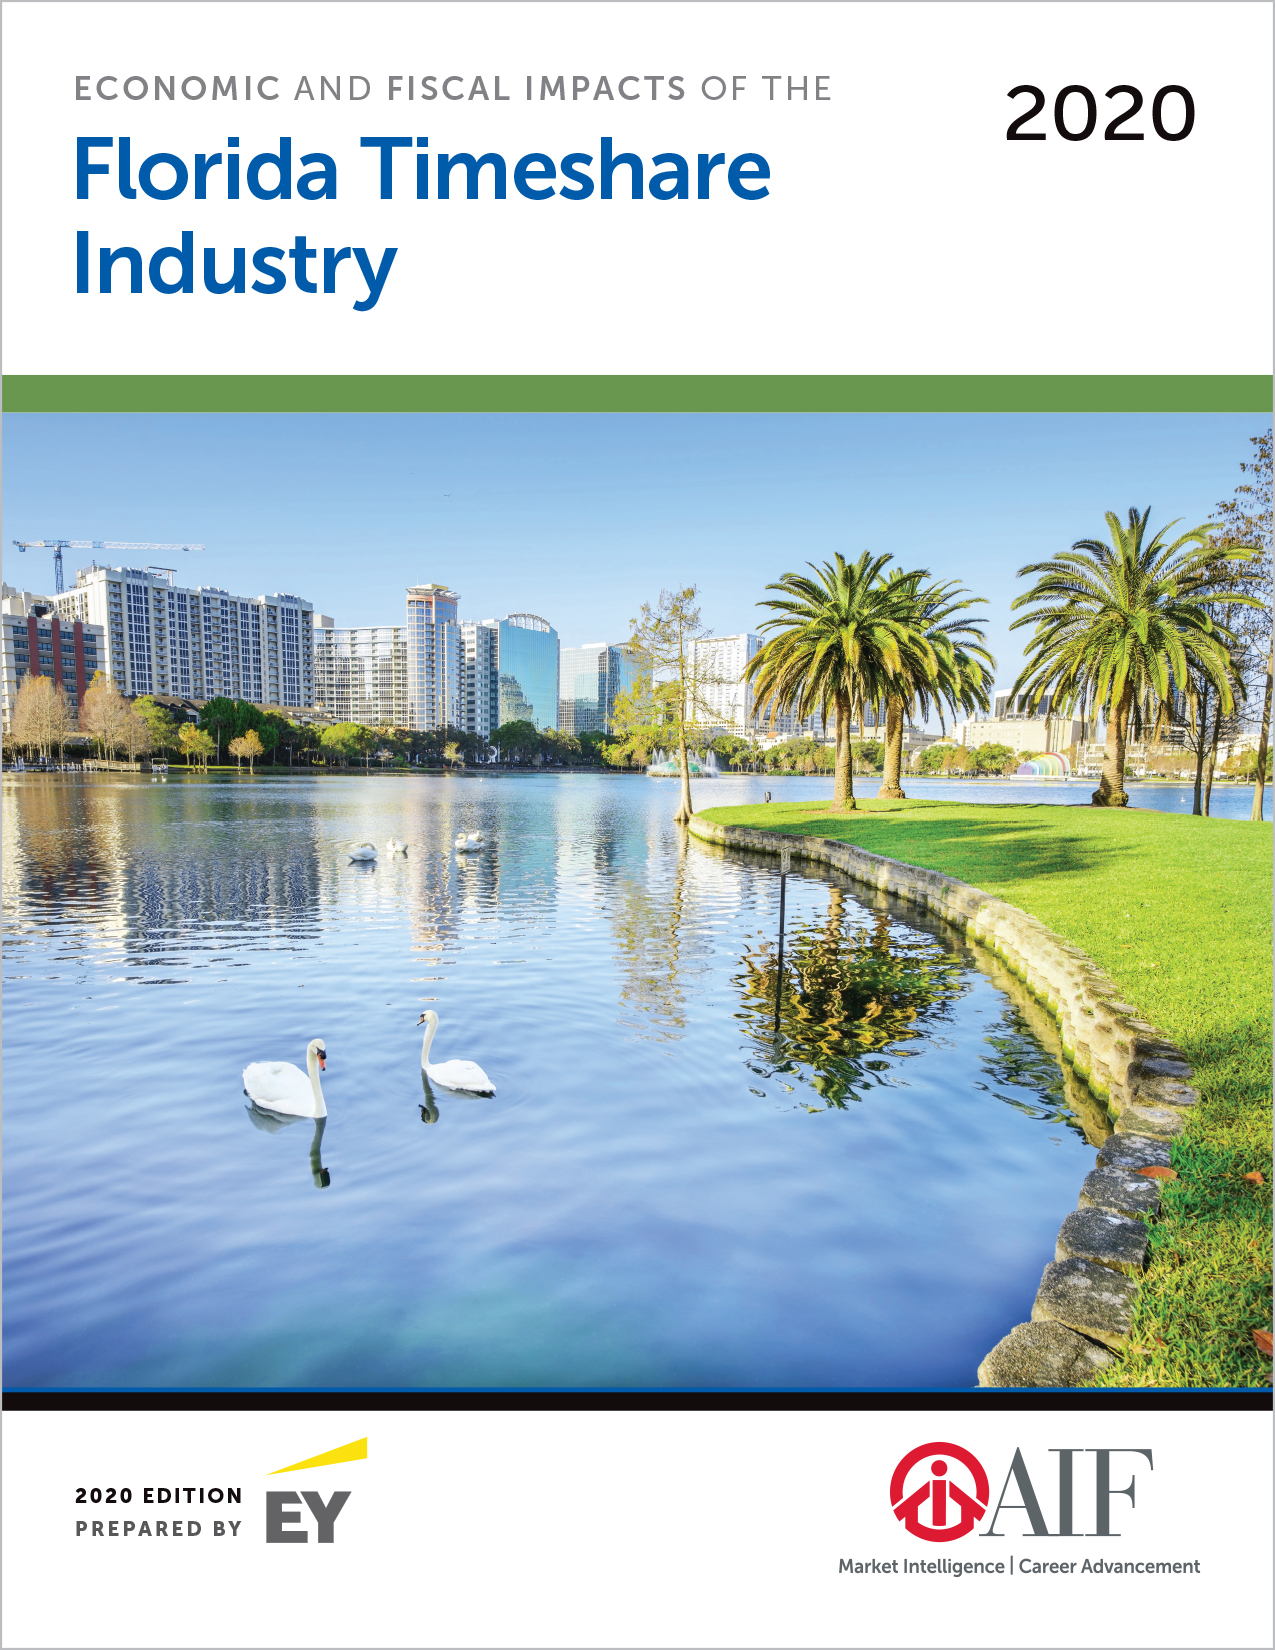 Economic and Fiscal Impacts of the Florida Timeshare Industry, 2020 Ed.